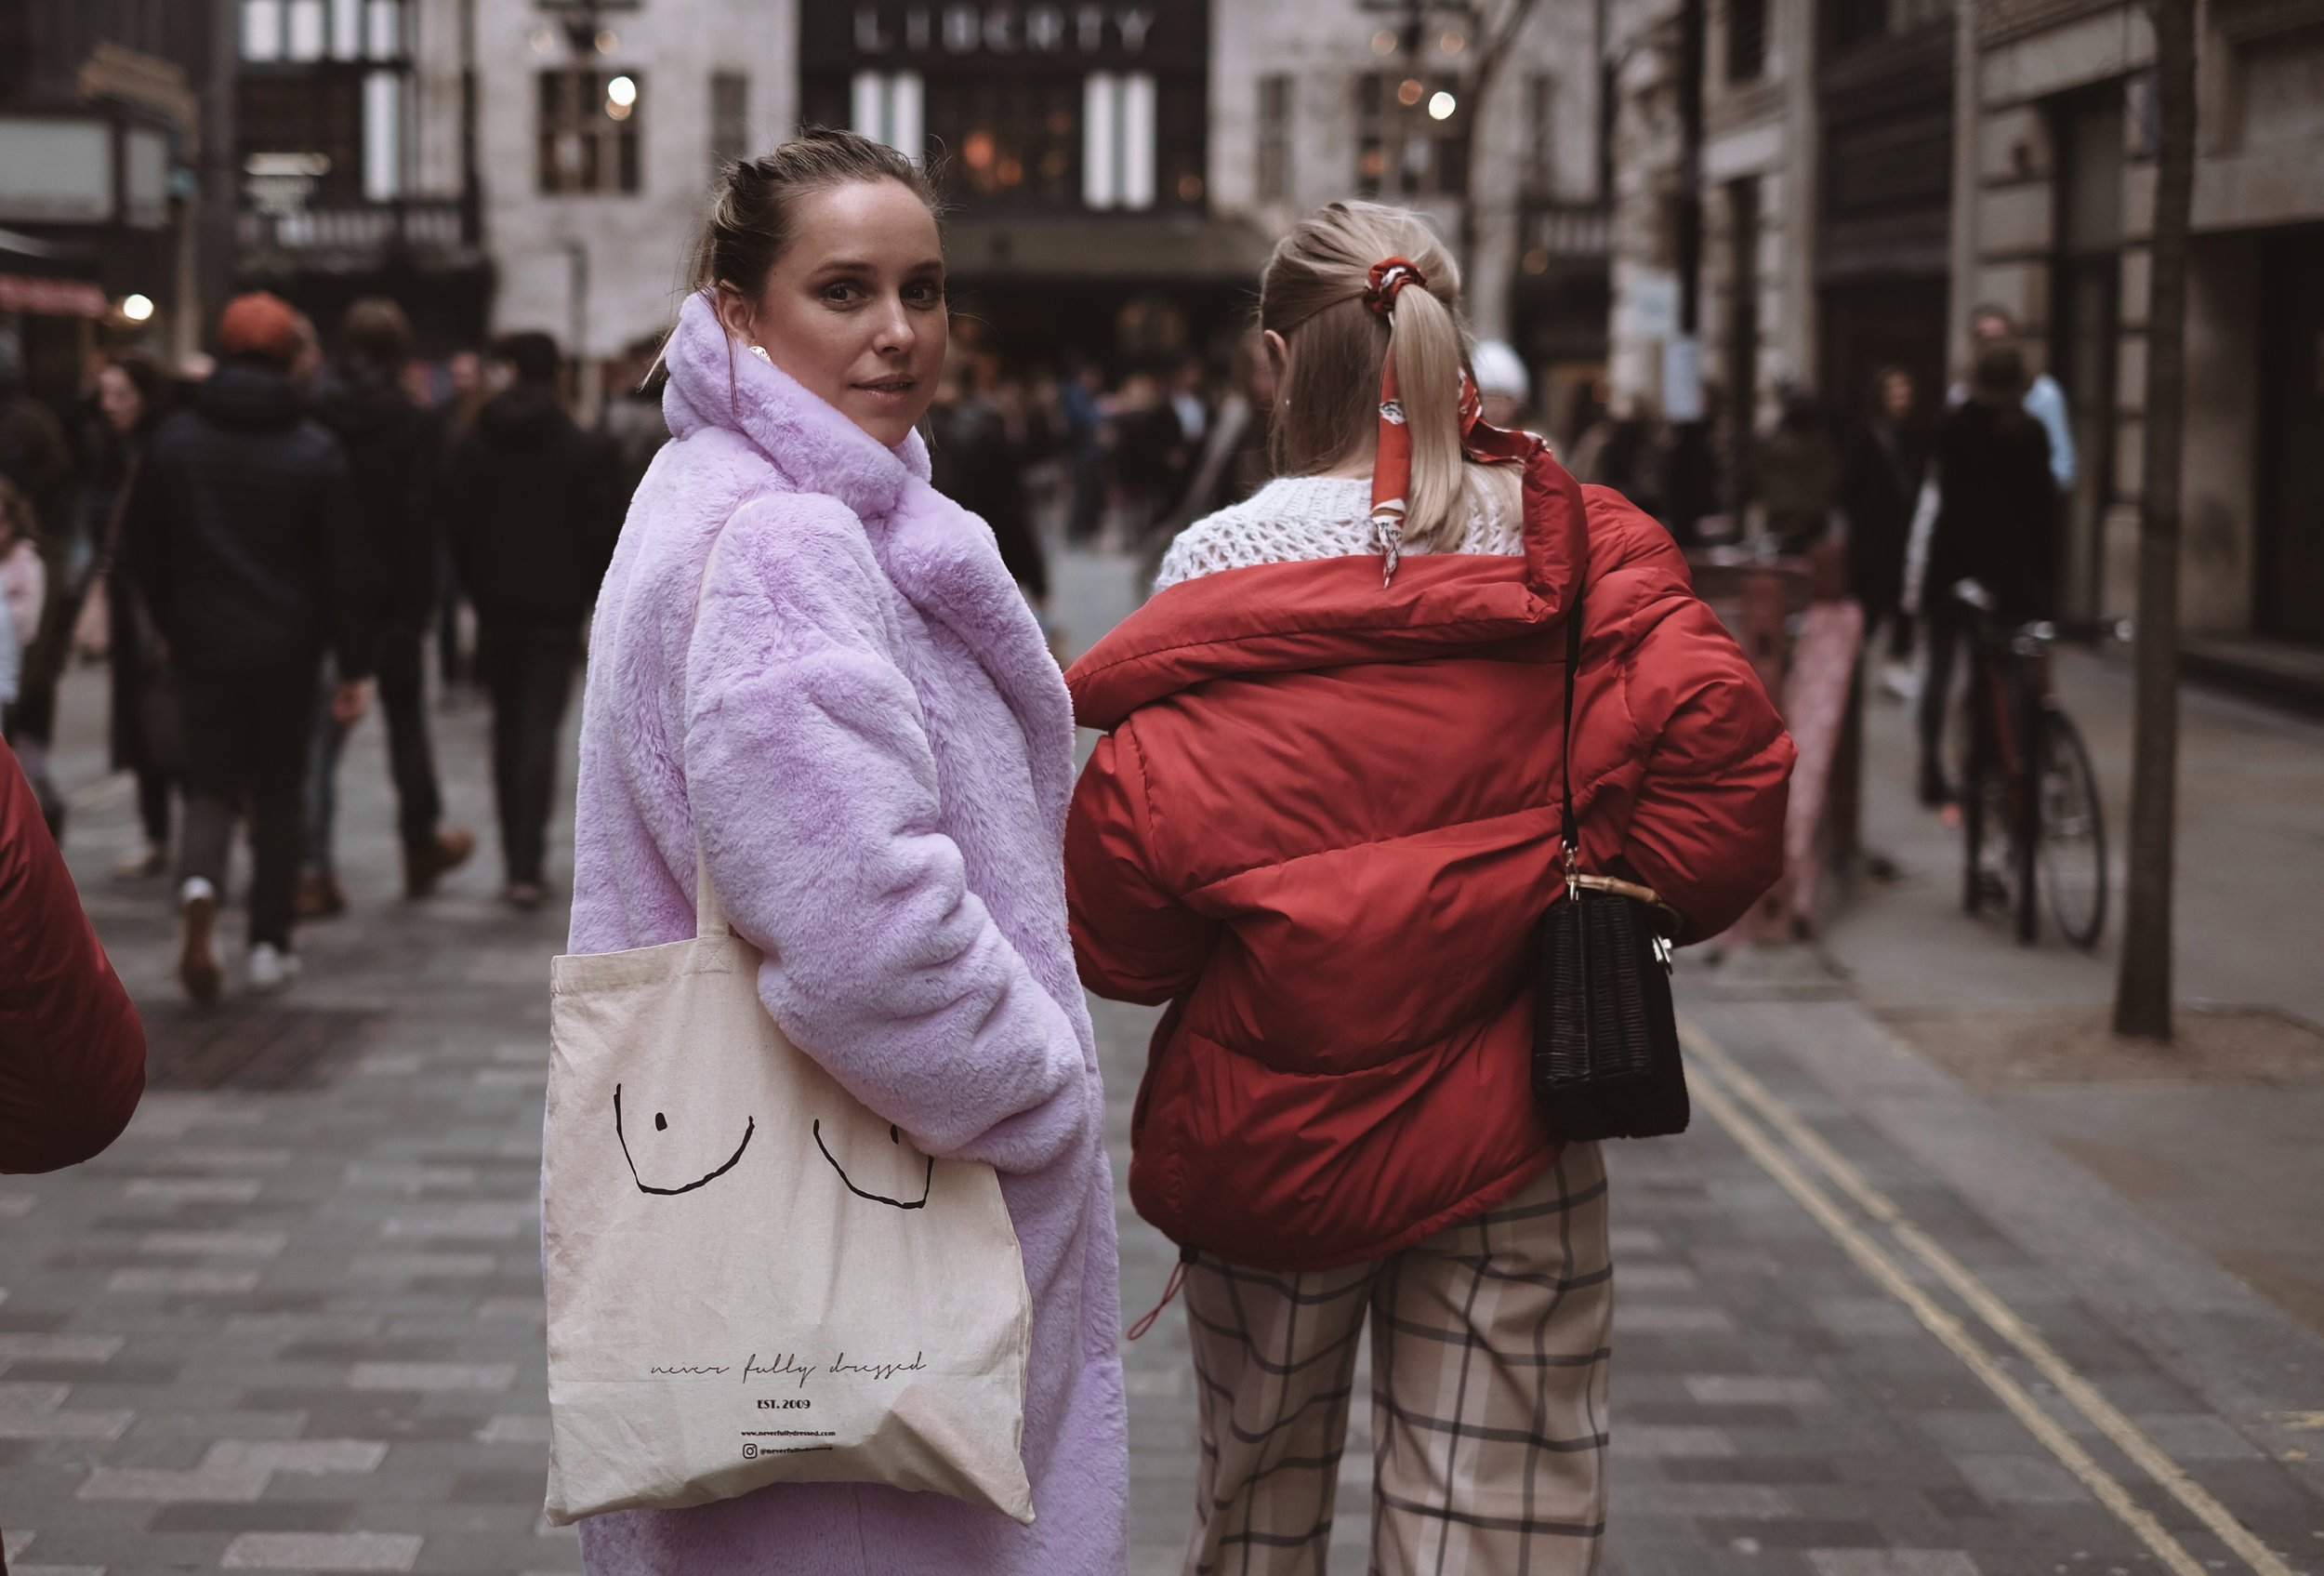 THE 4 OF US - London Fashion week, street style